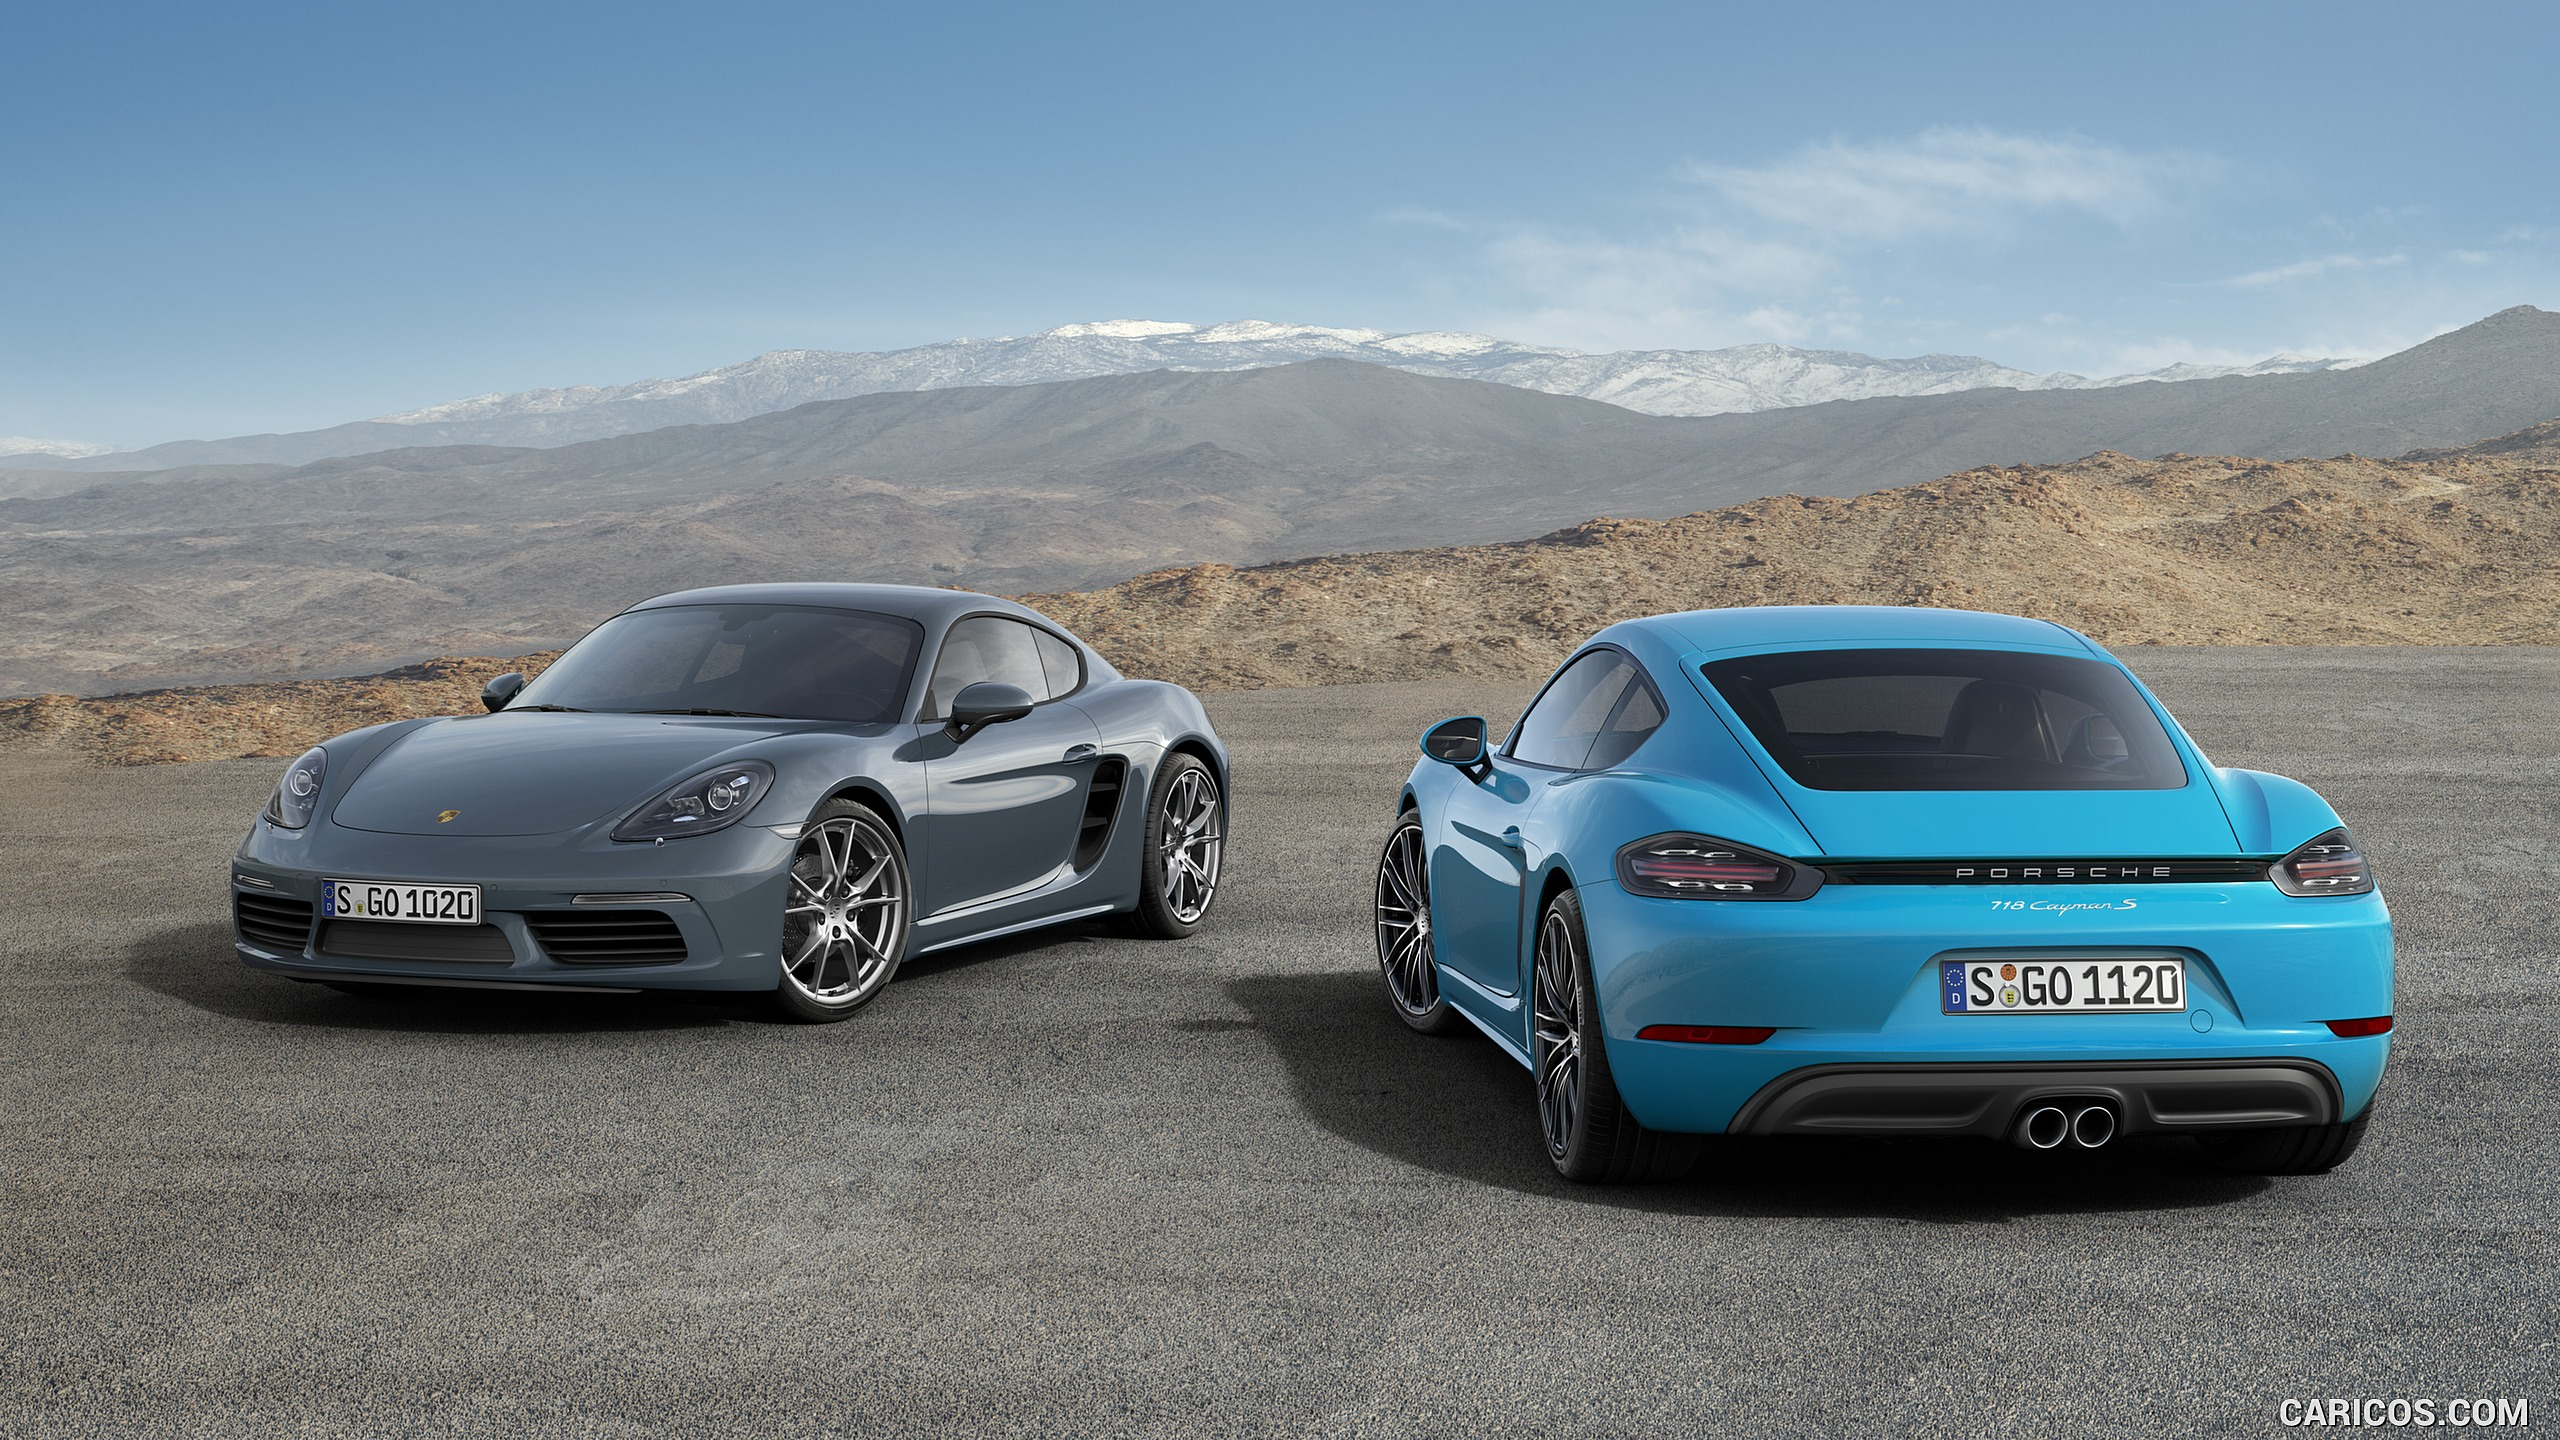 2560x1440 - Porsche Cayman Wallpapers 4